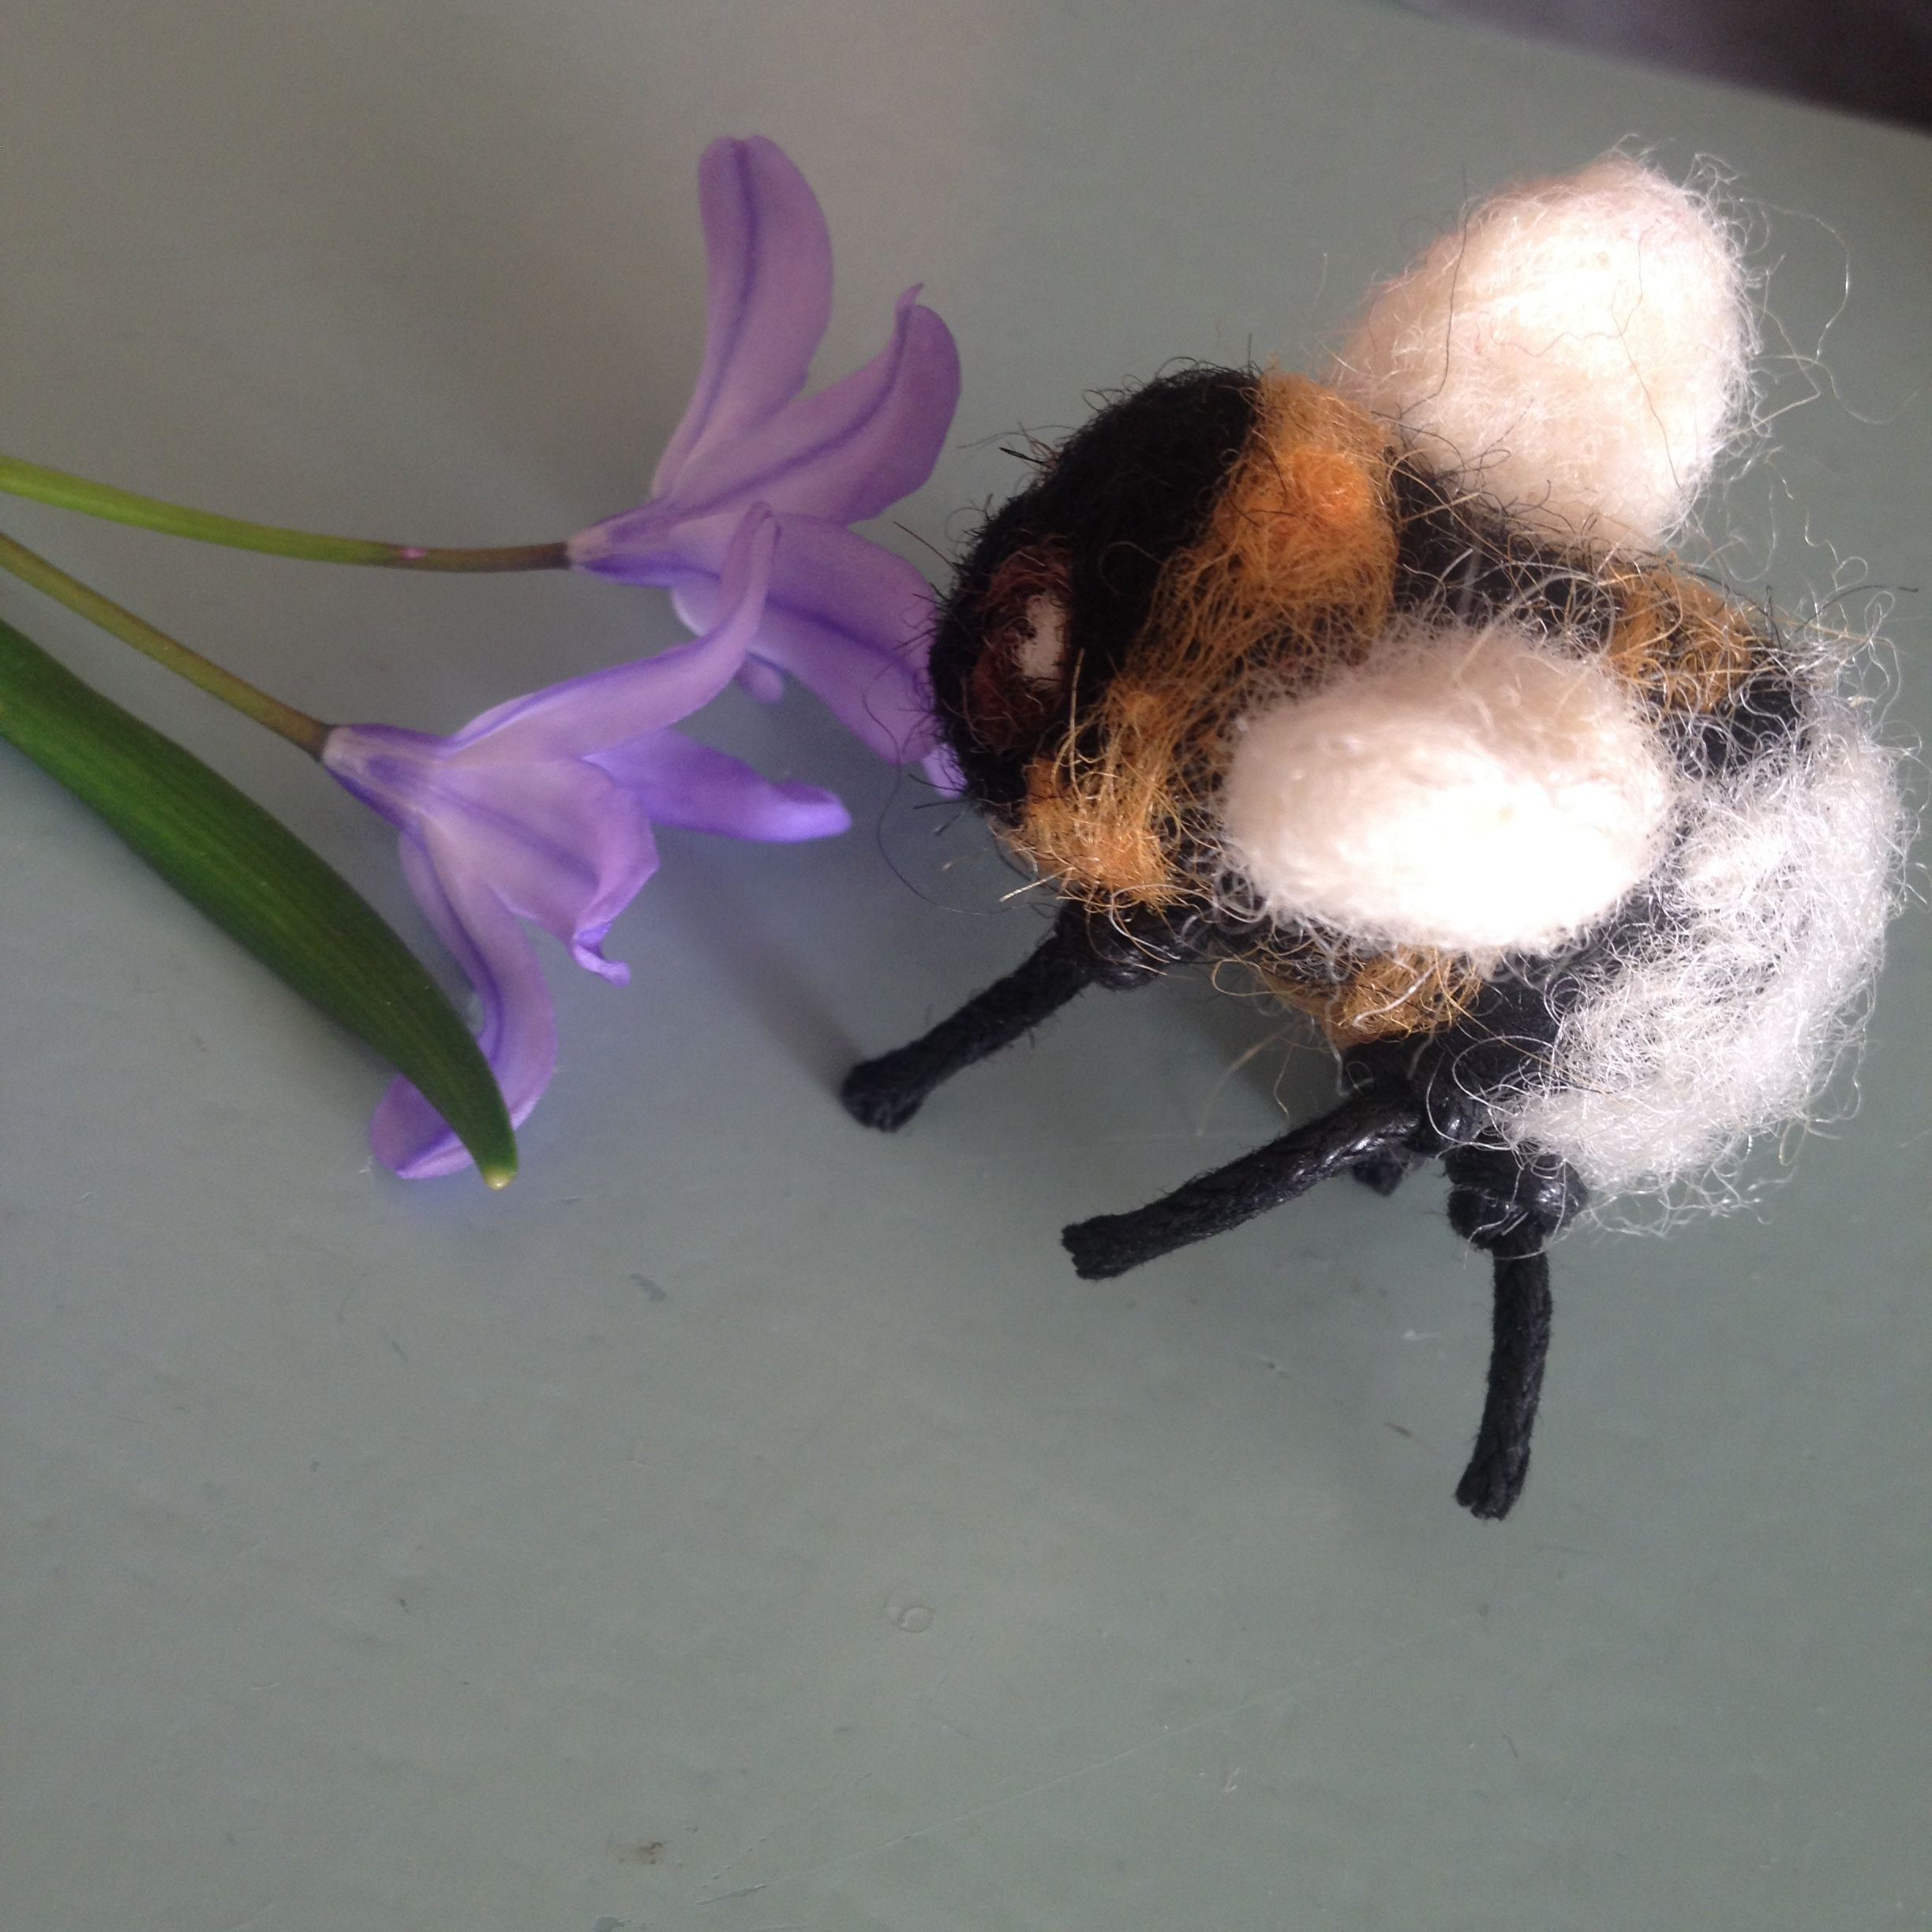 Needle Felted humblebee Gevilten hommel made by iefje